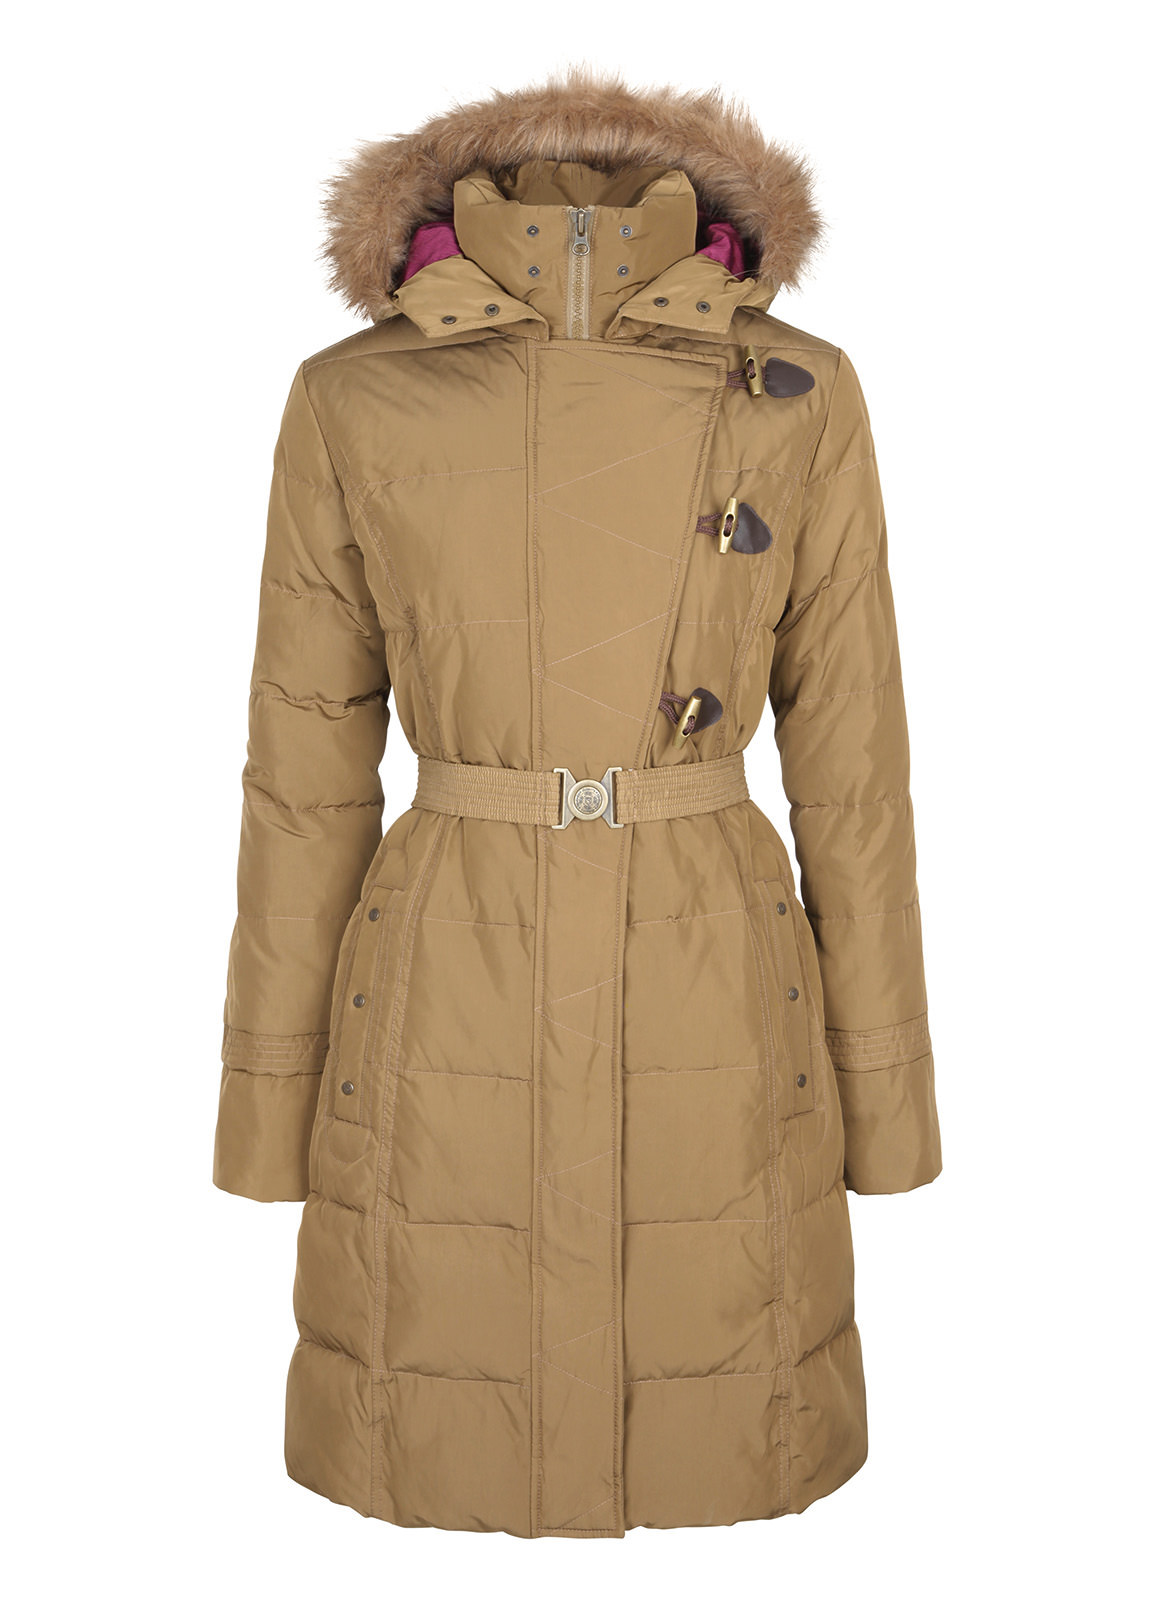 Dubarry_ Inverin Women's Thigh-Length Hooded Coat - Woodrose_Image_2